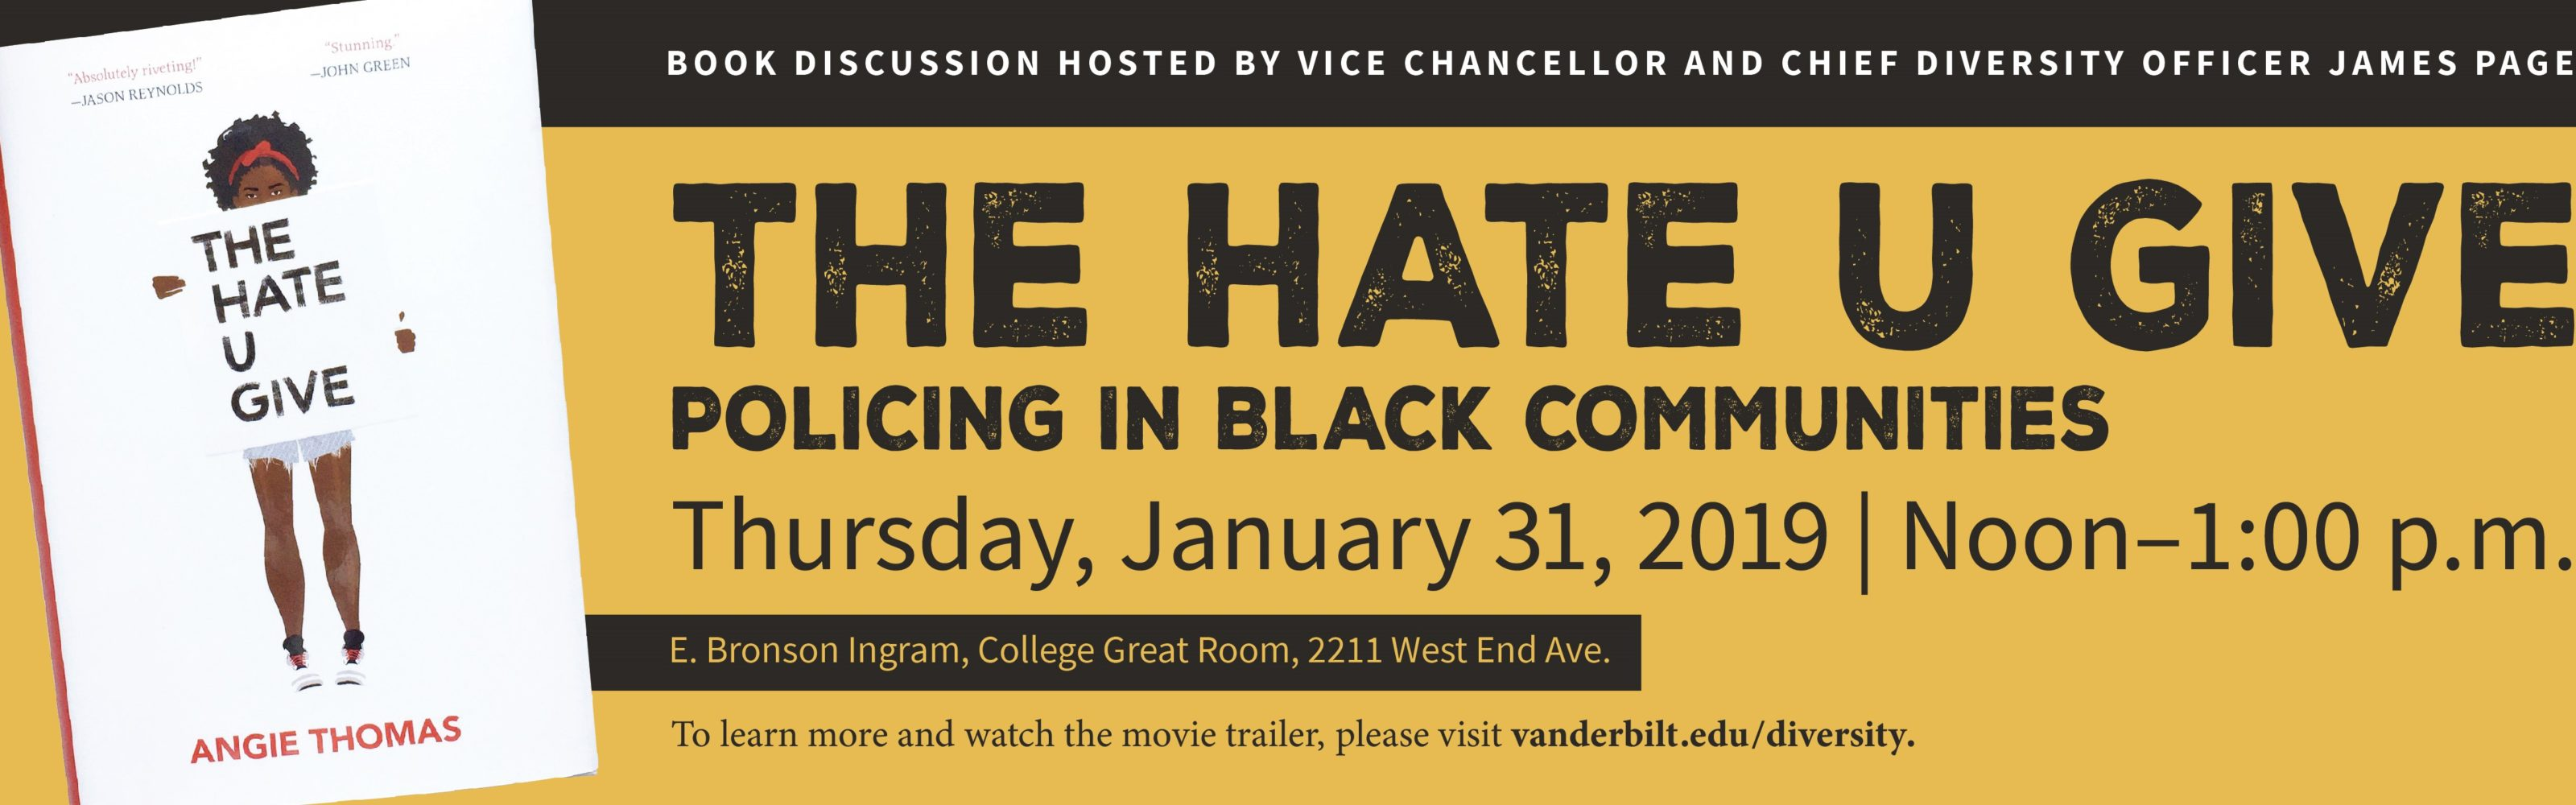 'The Hate U Give' Book Discussion Set for Jan. 31